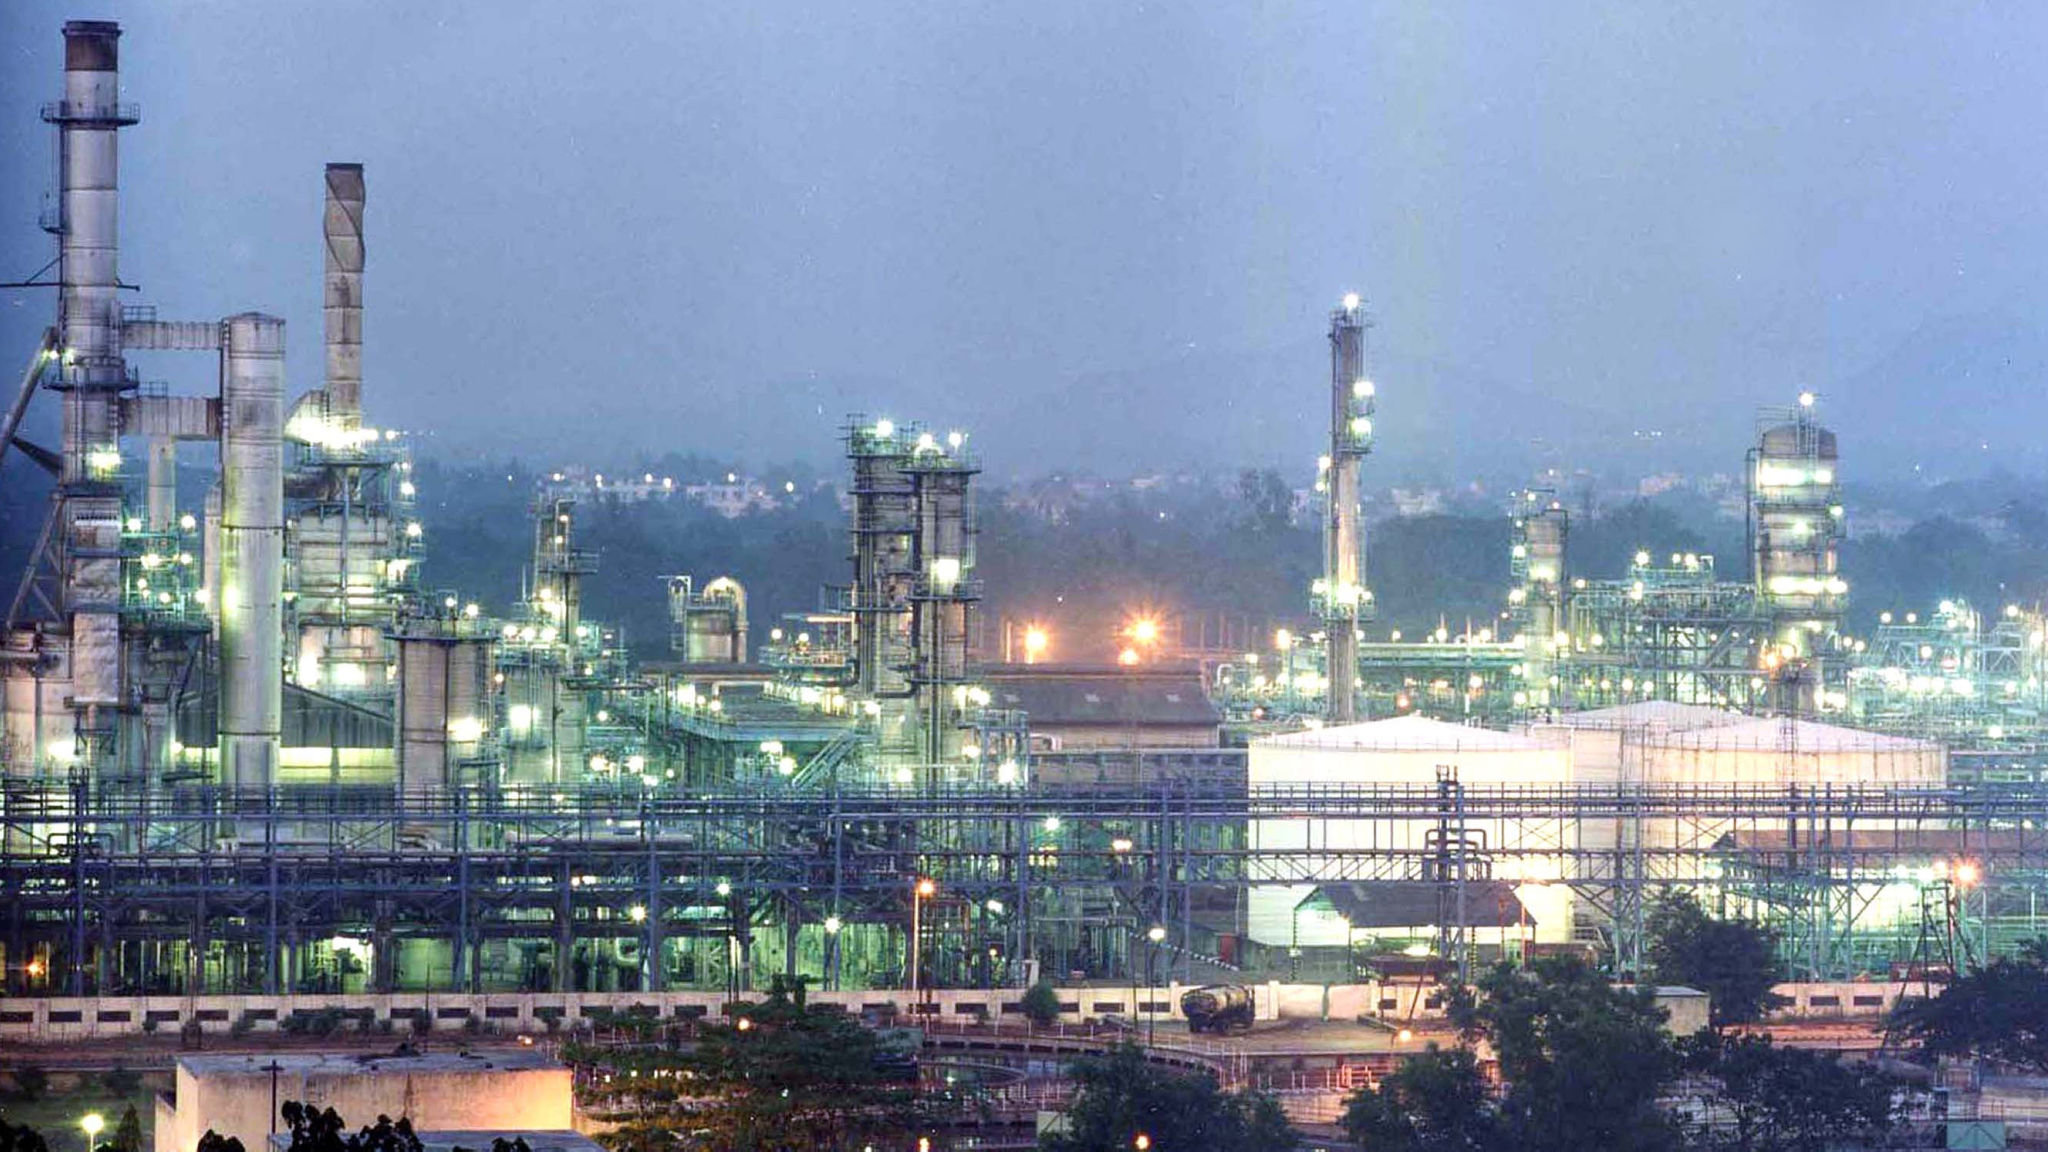 Saudi Aramco to acquire 20% of Reliance's oil refining unit